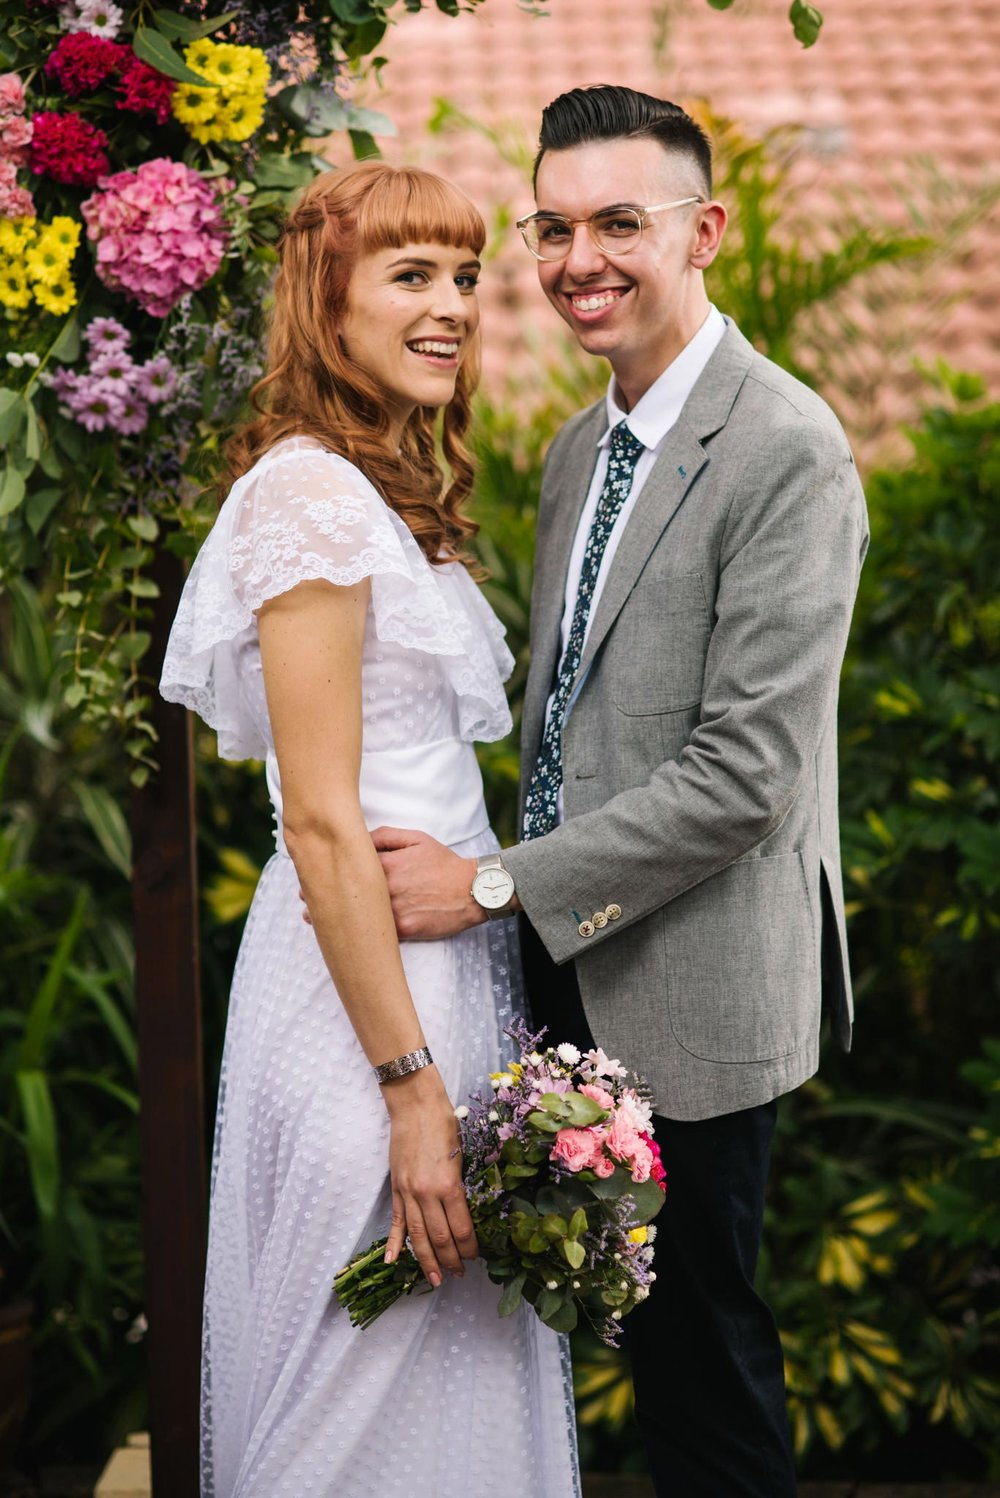 Hipster newlyweds at garden ceremony Sydney